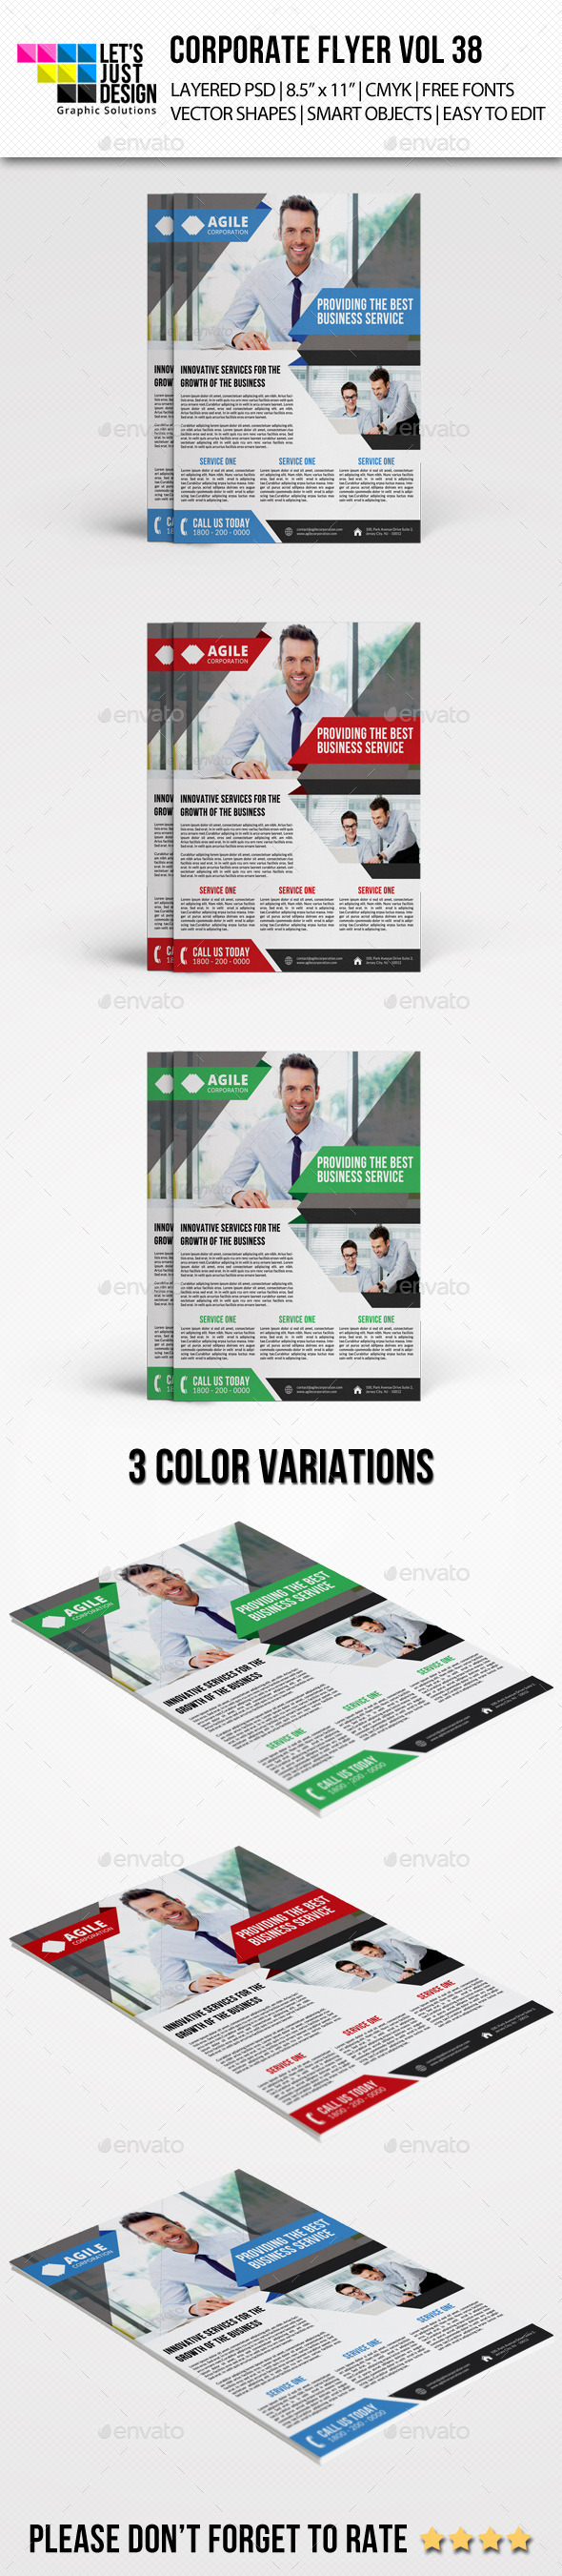 Corporate Flyer Template Vol 38